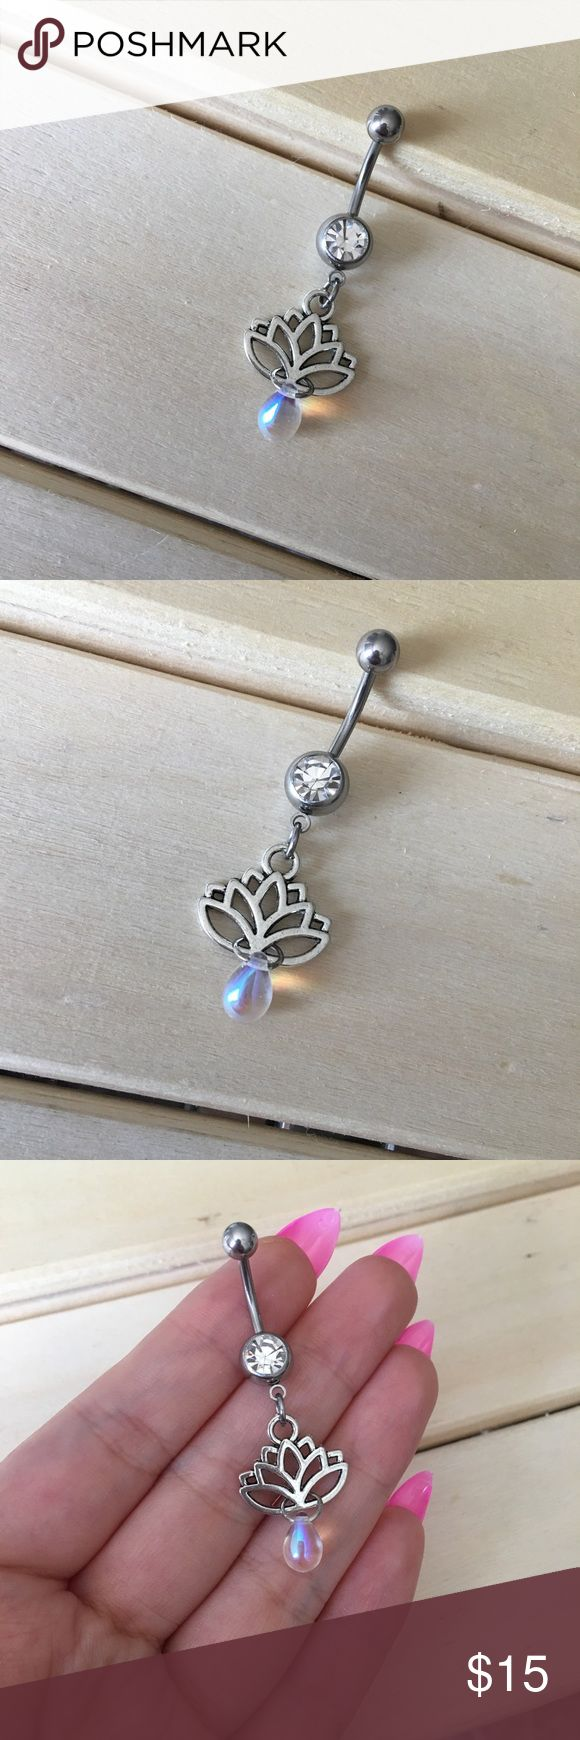 Iridescent Lotus Belly Button Ring Condition: Brand New Metal : Surgical Steel Size: 14 Gauge If you have any questions please leave a comment down below. Reasonable offers will be accepted I do not trade . -Belly Button Ring Navel Piercing 14G Surgical Steel Body Jewelry New- Jewelry Rings